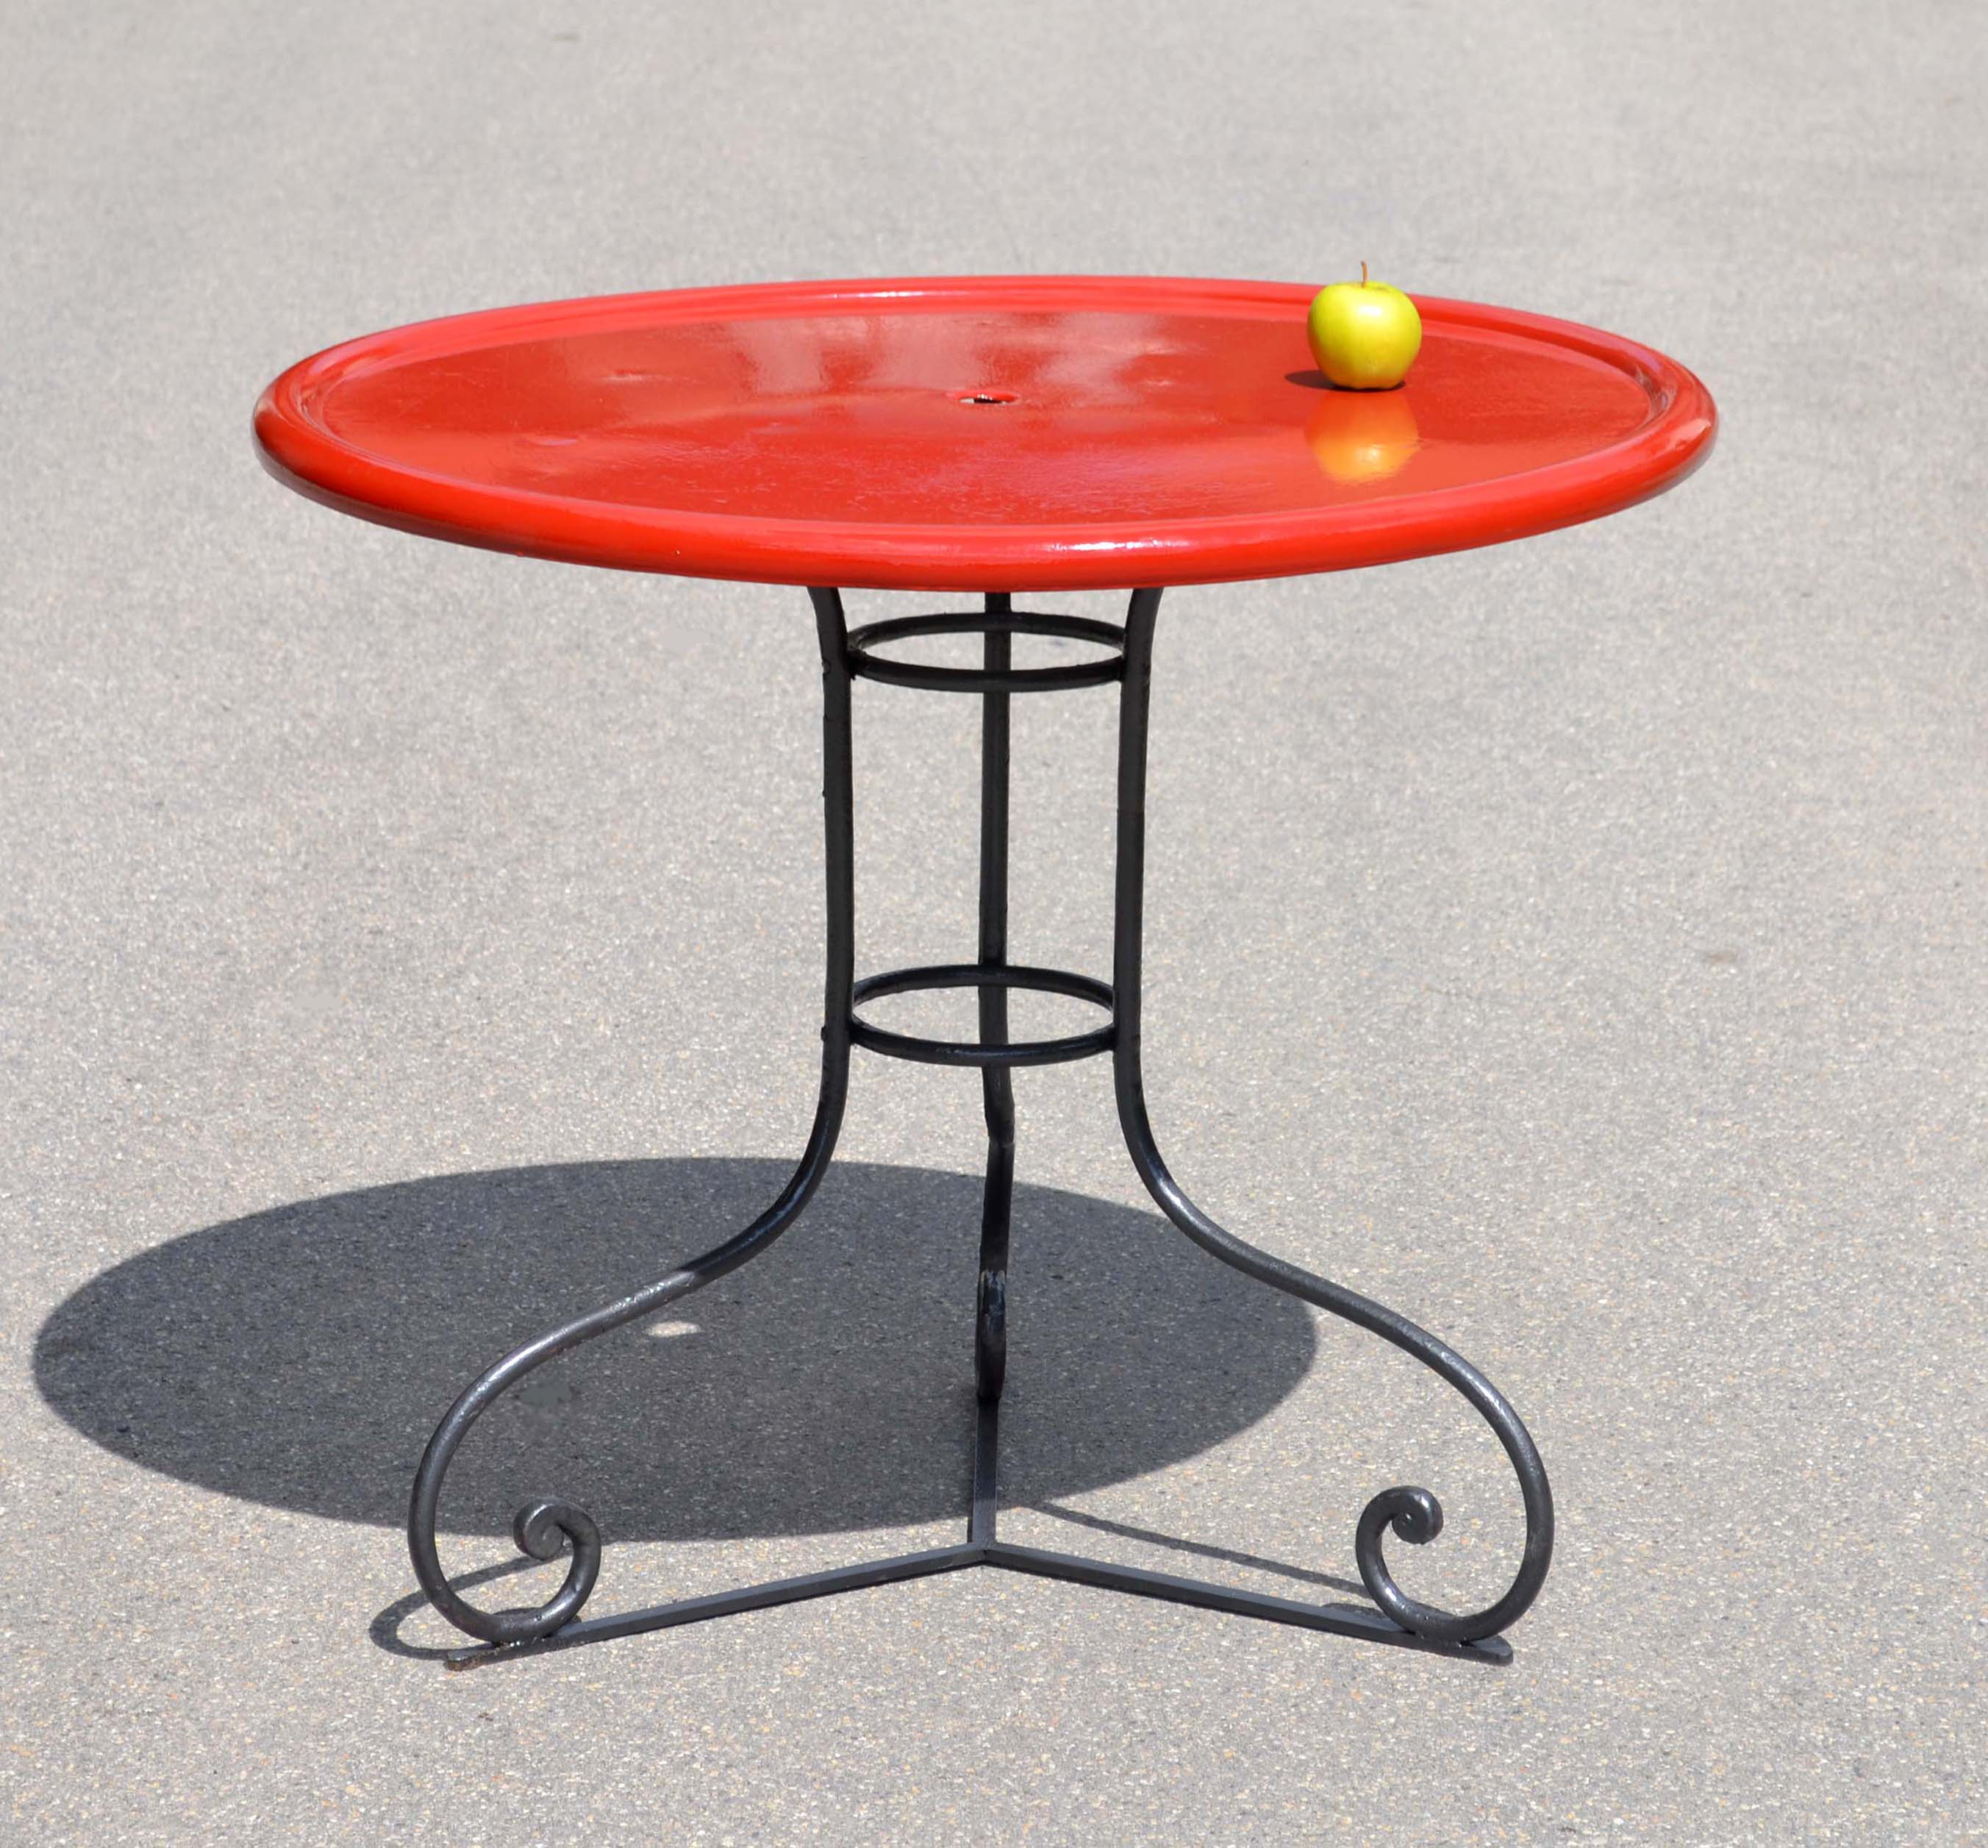 Table De Jardin Rouge Table De Jardin Rouge Salon De Jardin Table Modulo Noir